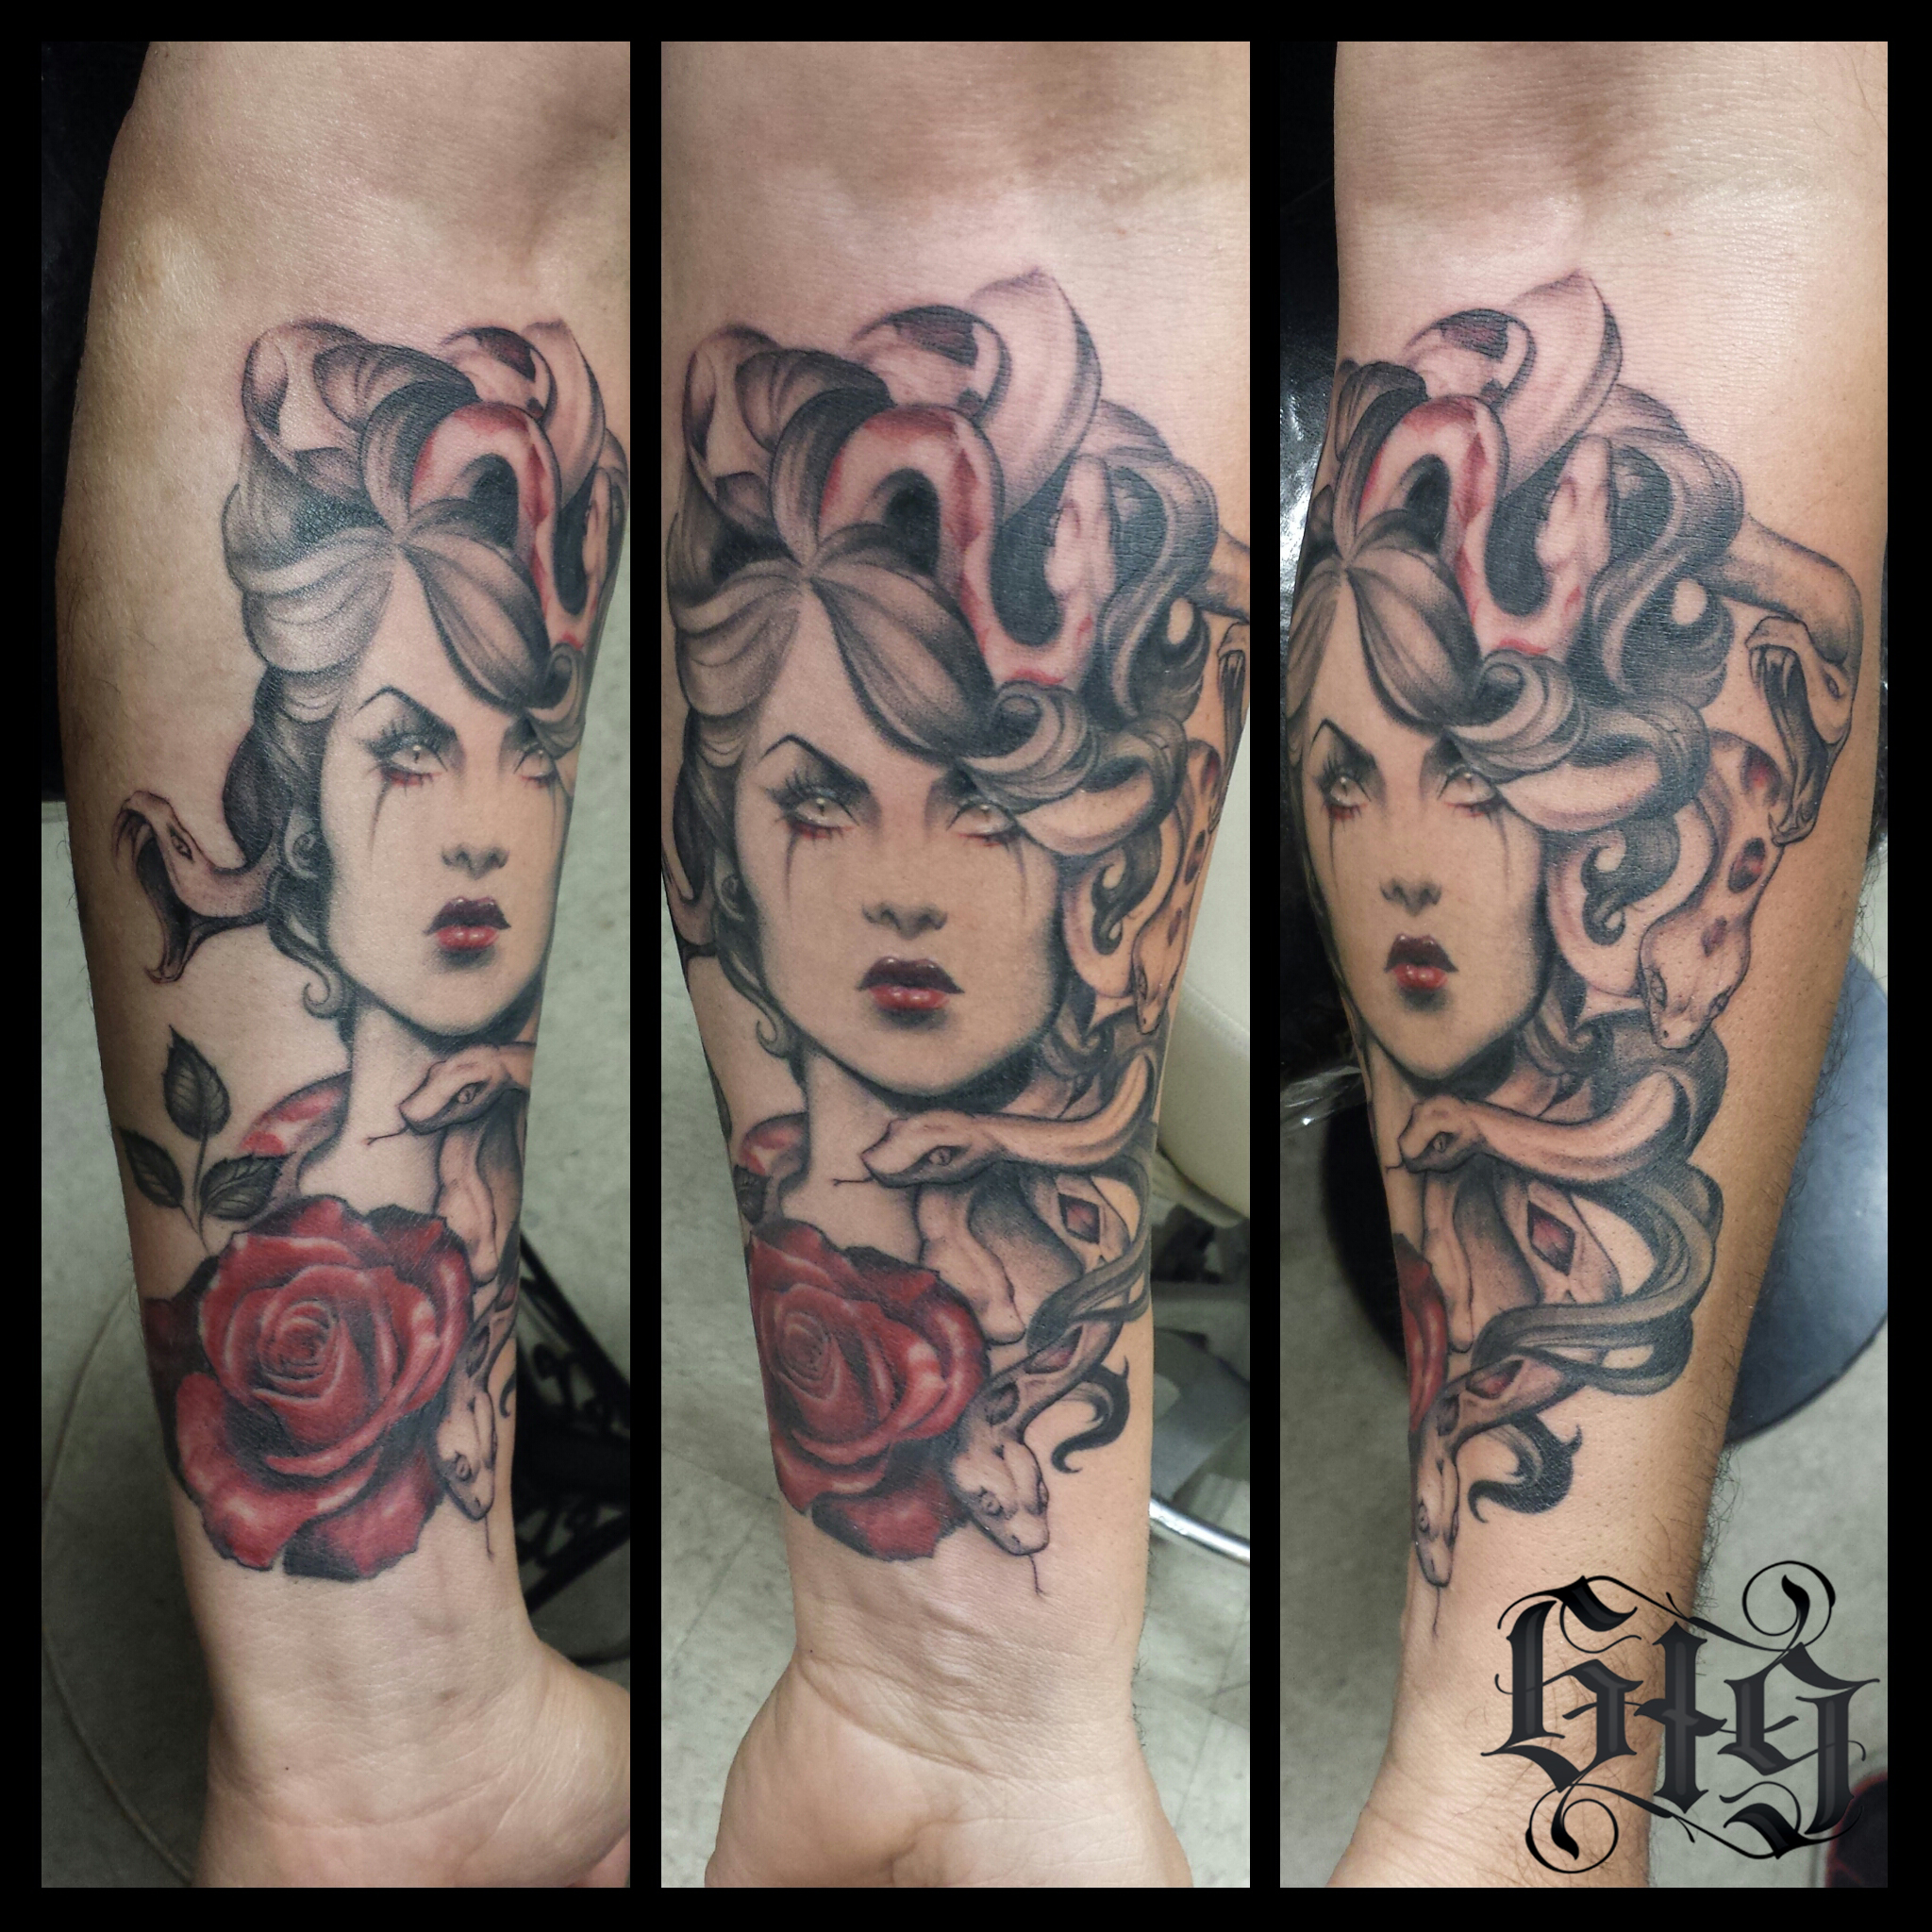 Female portrait with snakes in her curls and a red rose. Black gray and red forearm half sleeve tattoo.